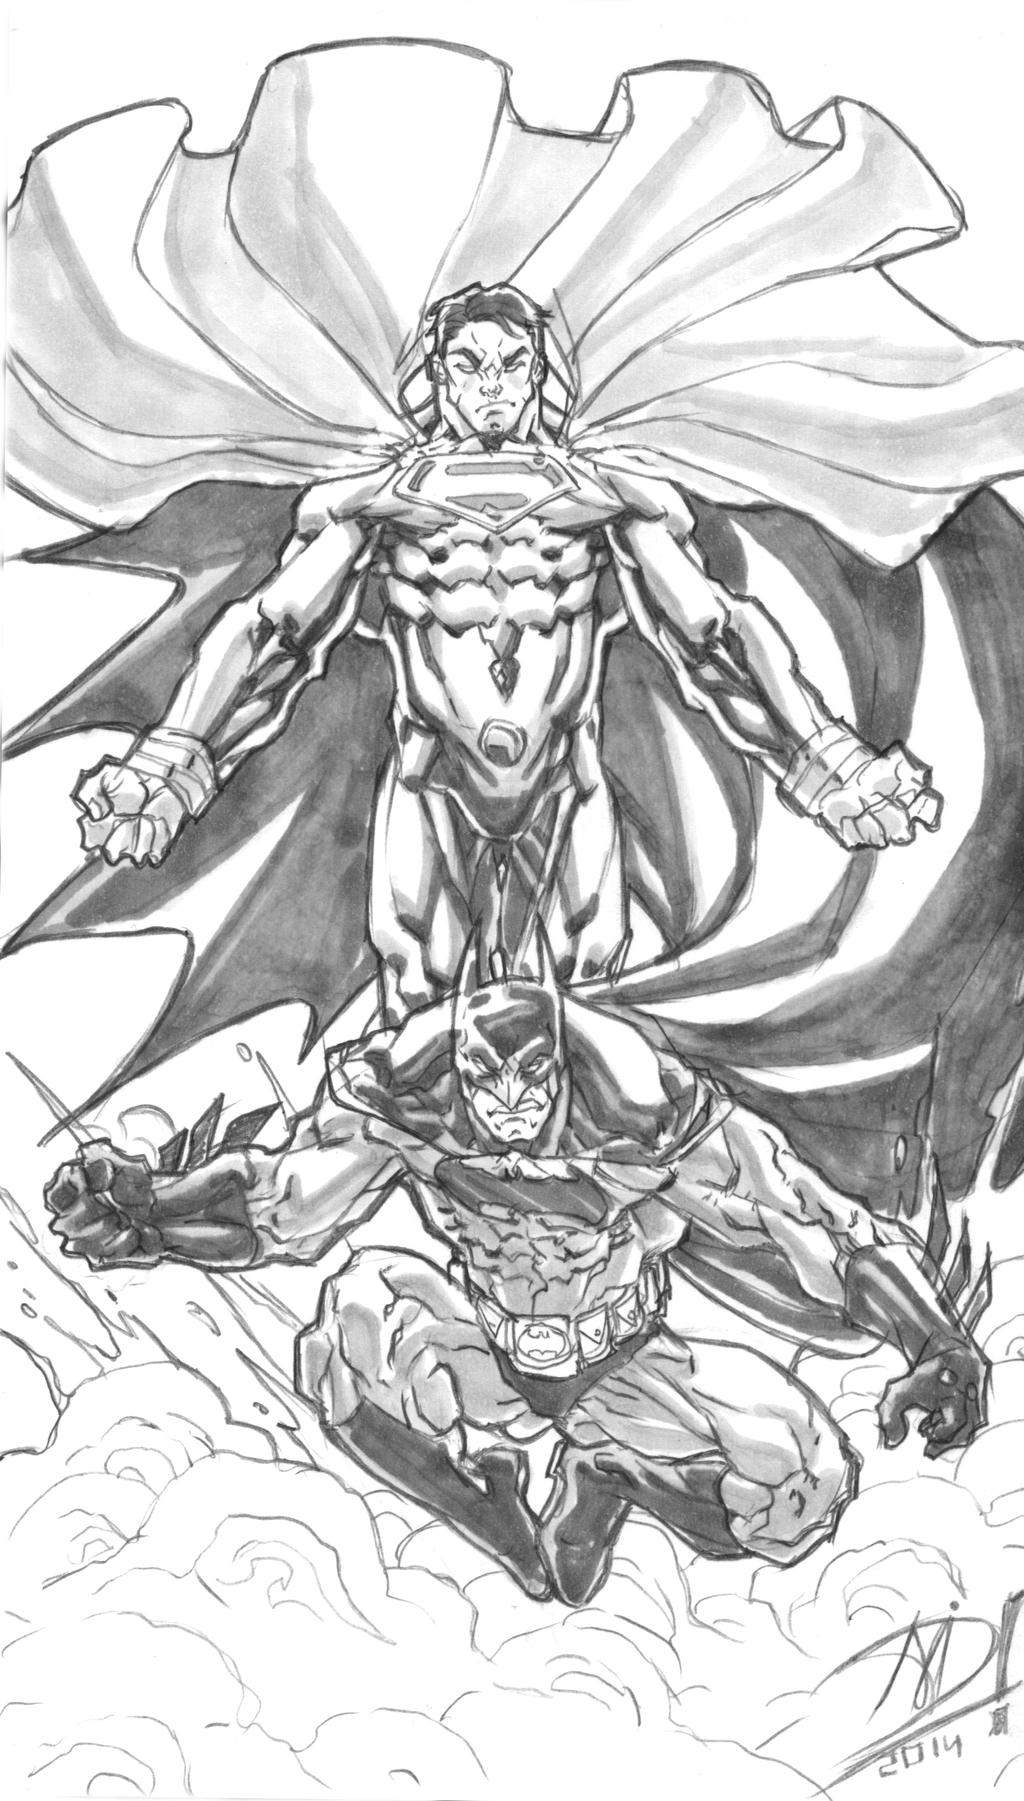 Superman V Batman - Tribute Sketch By Darnof On DeviantArt